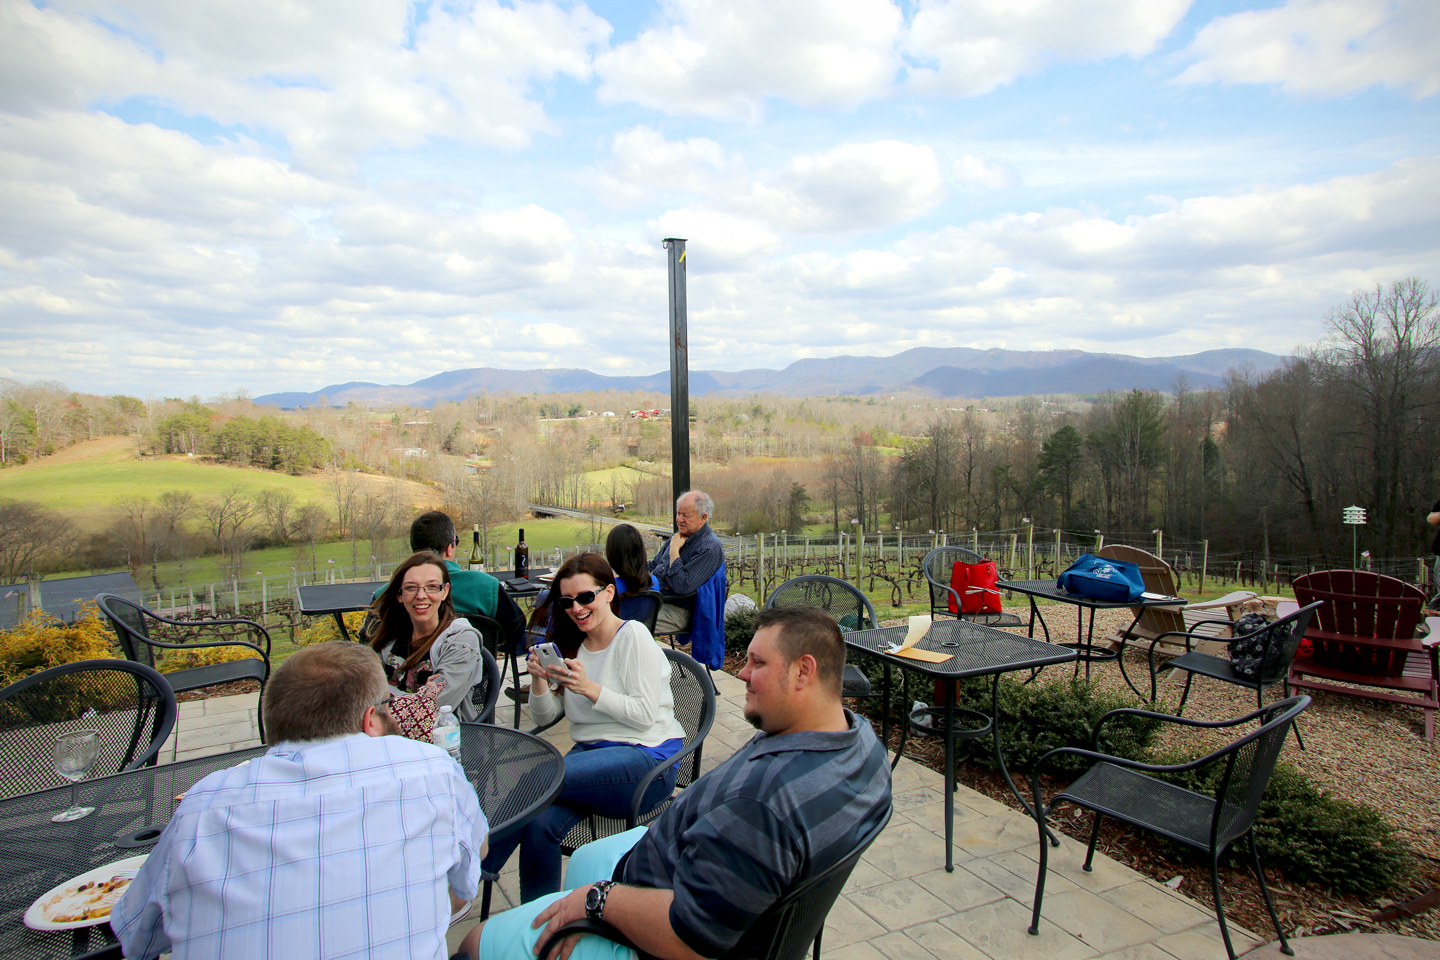 Silver Fork Winery in Morganton offers a incredible view of the North Carolina mountains